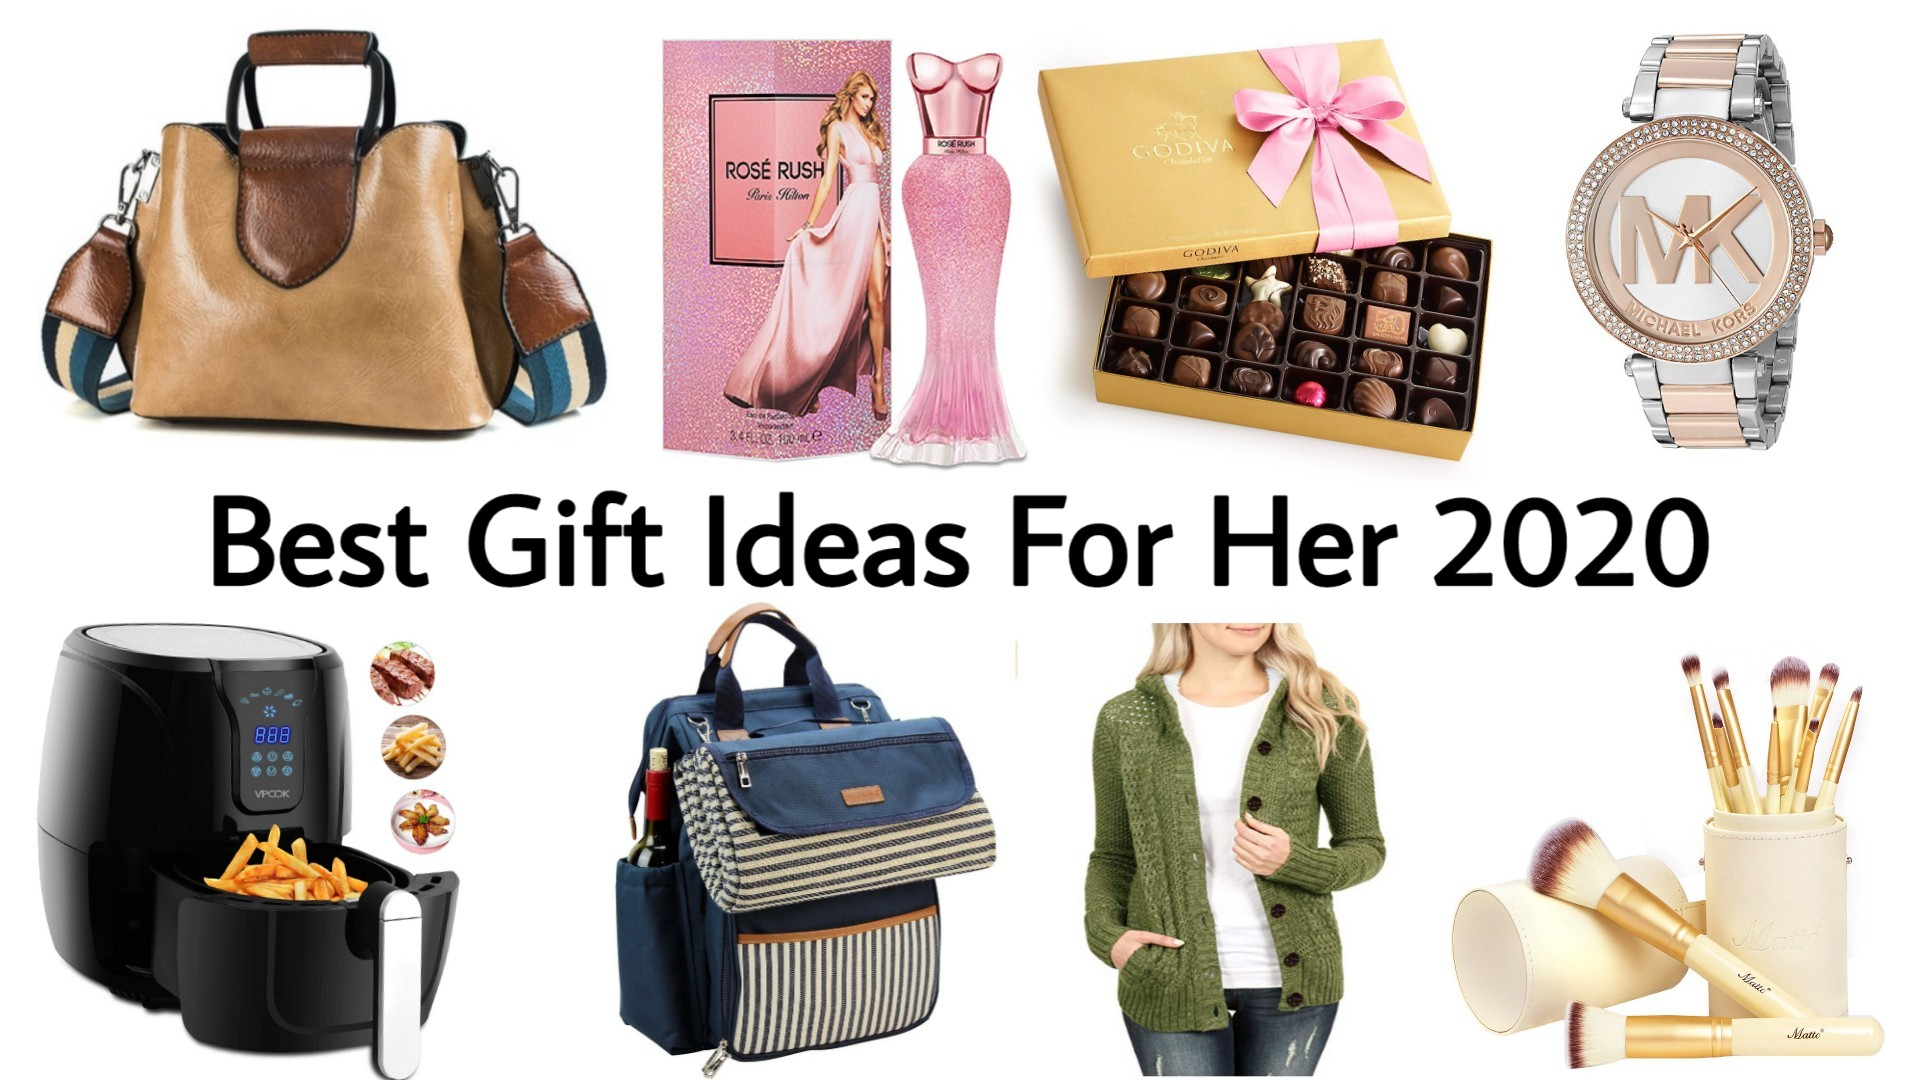 Best Christmas Gifts For Her 2020 Best Christmas Gifts for Her 2020 | Top Birthday Gifts for Wife